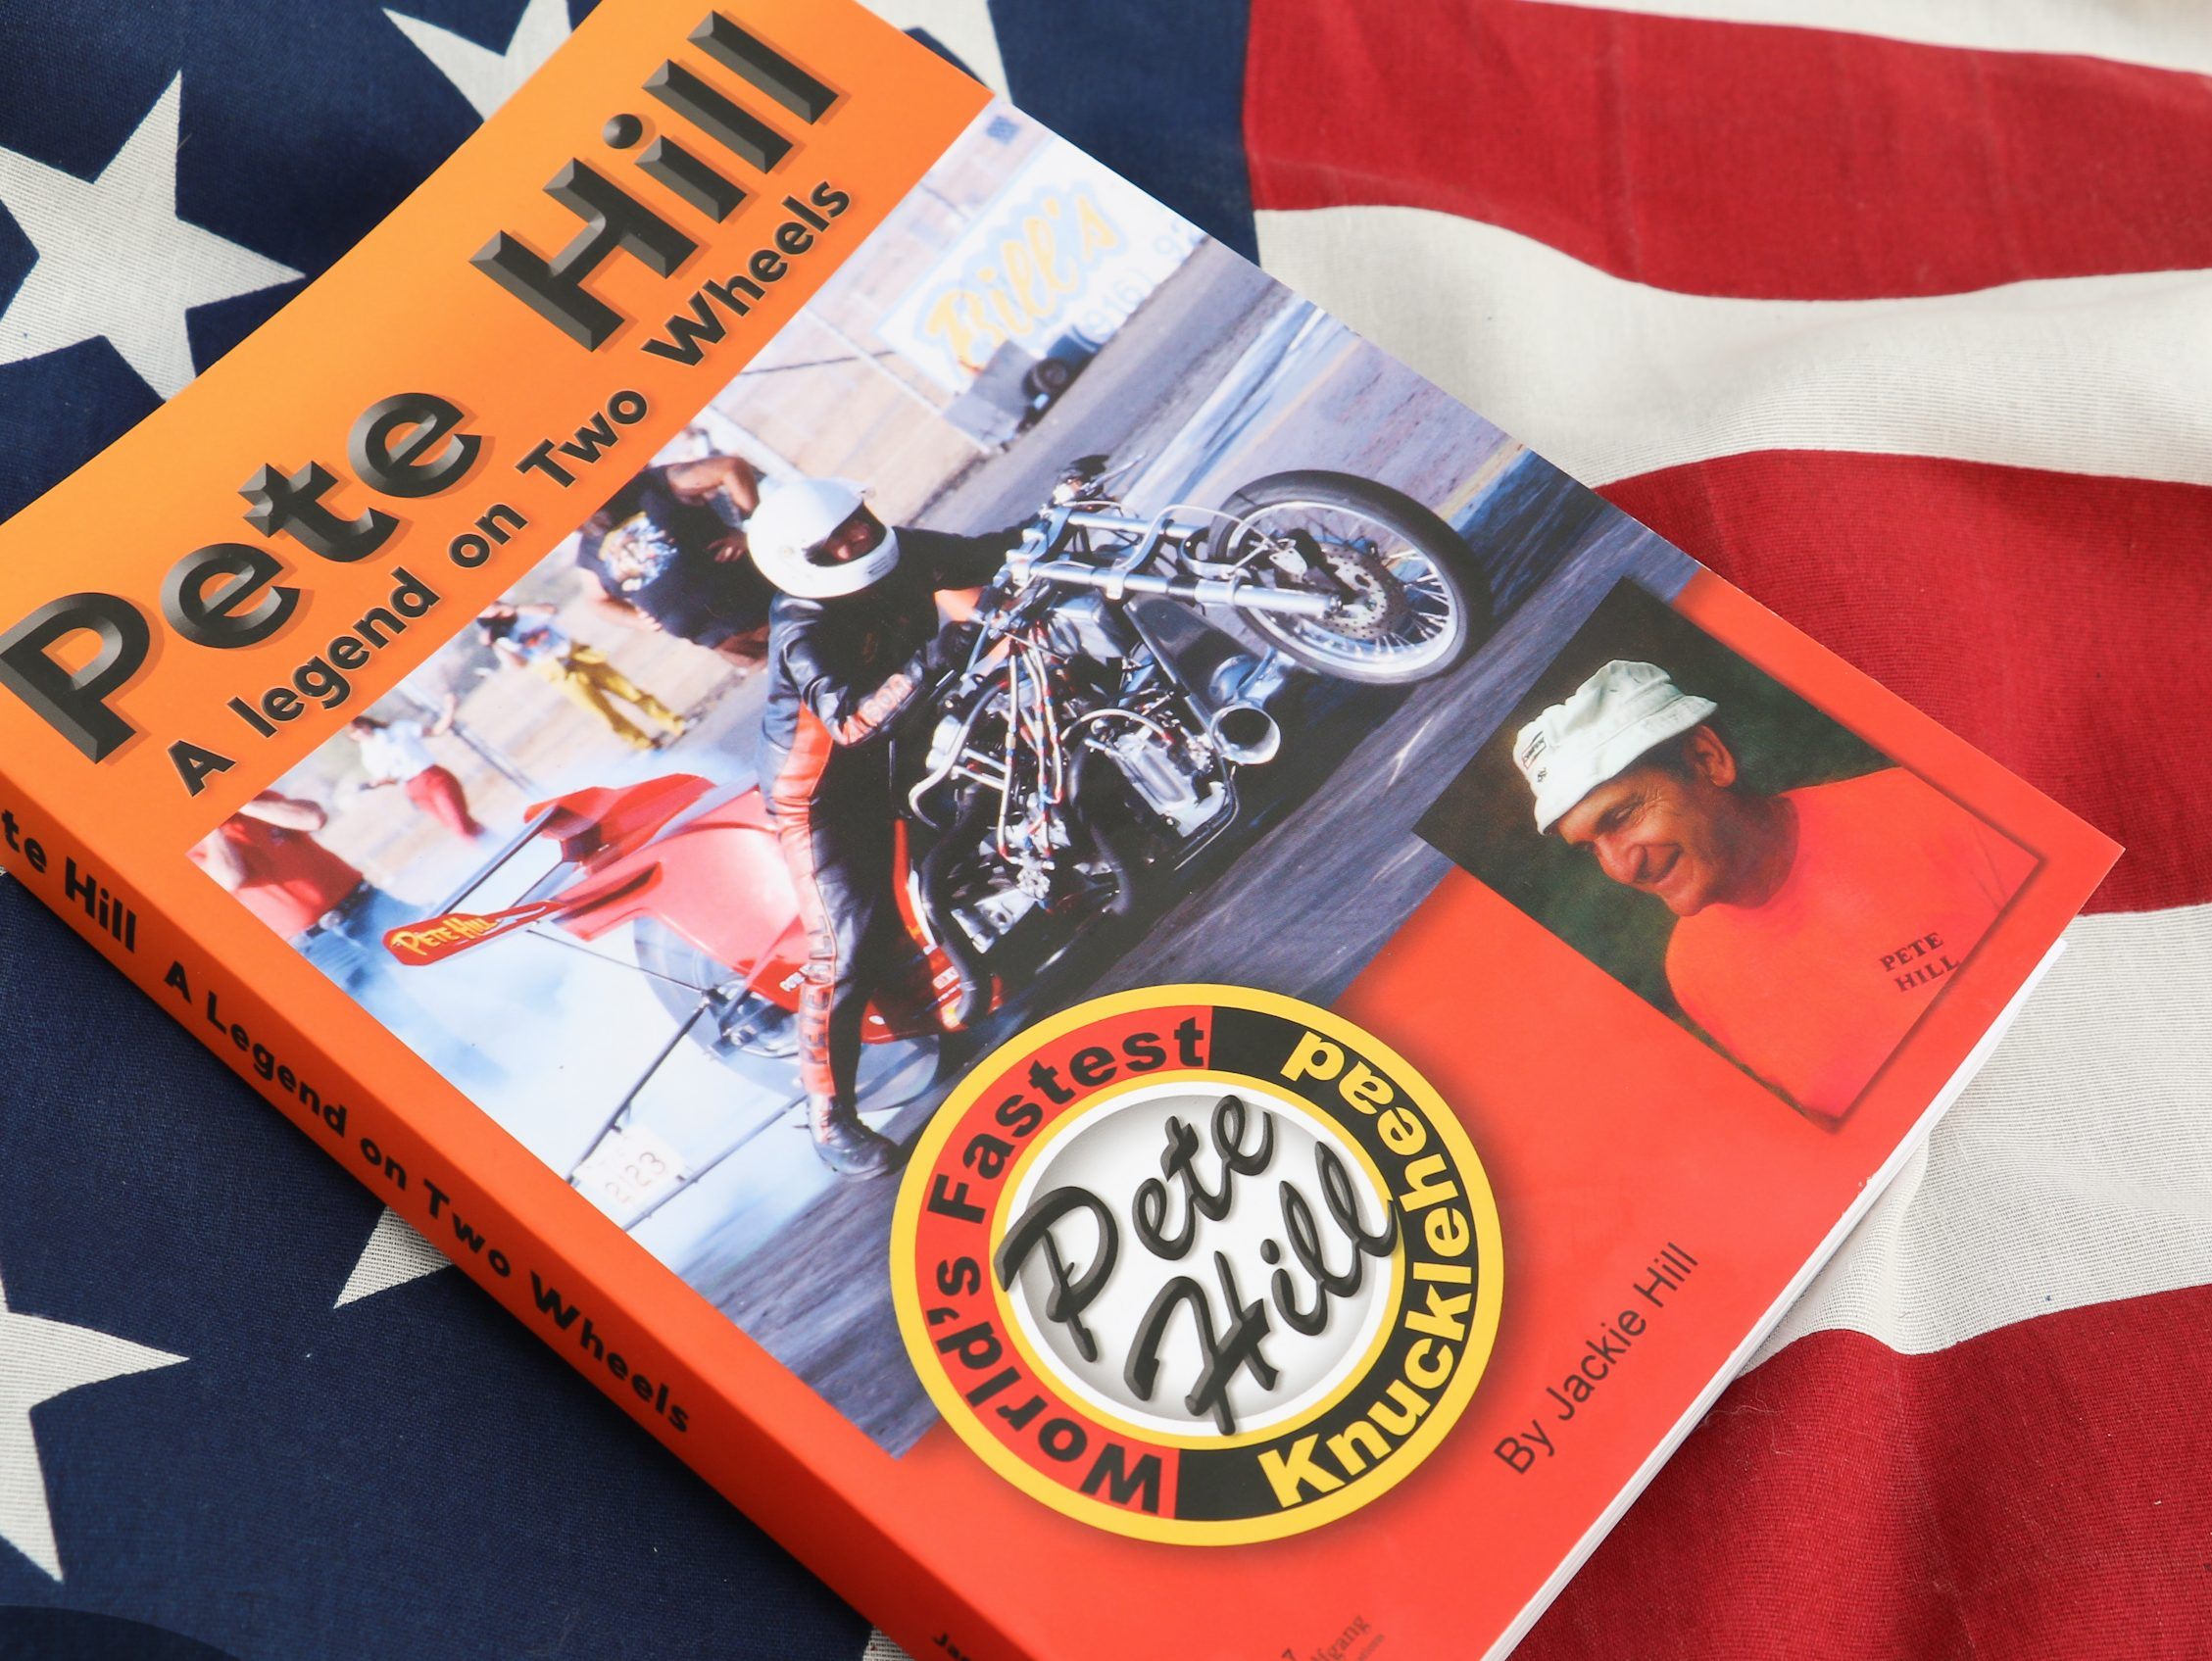 Pete Hill Book